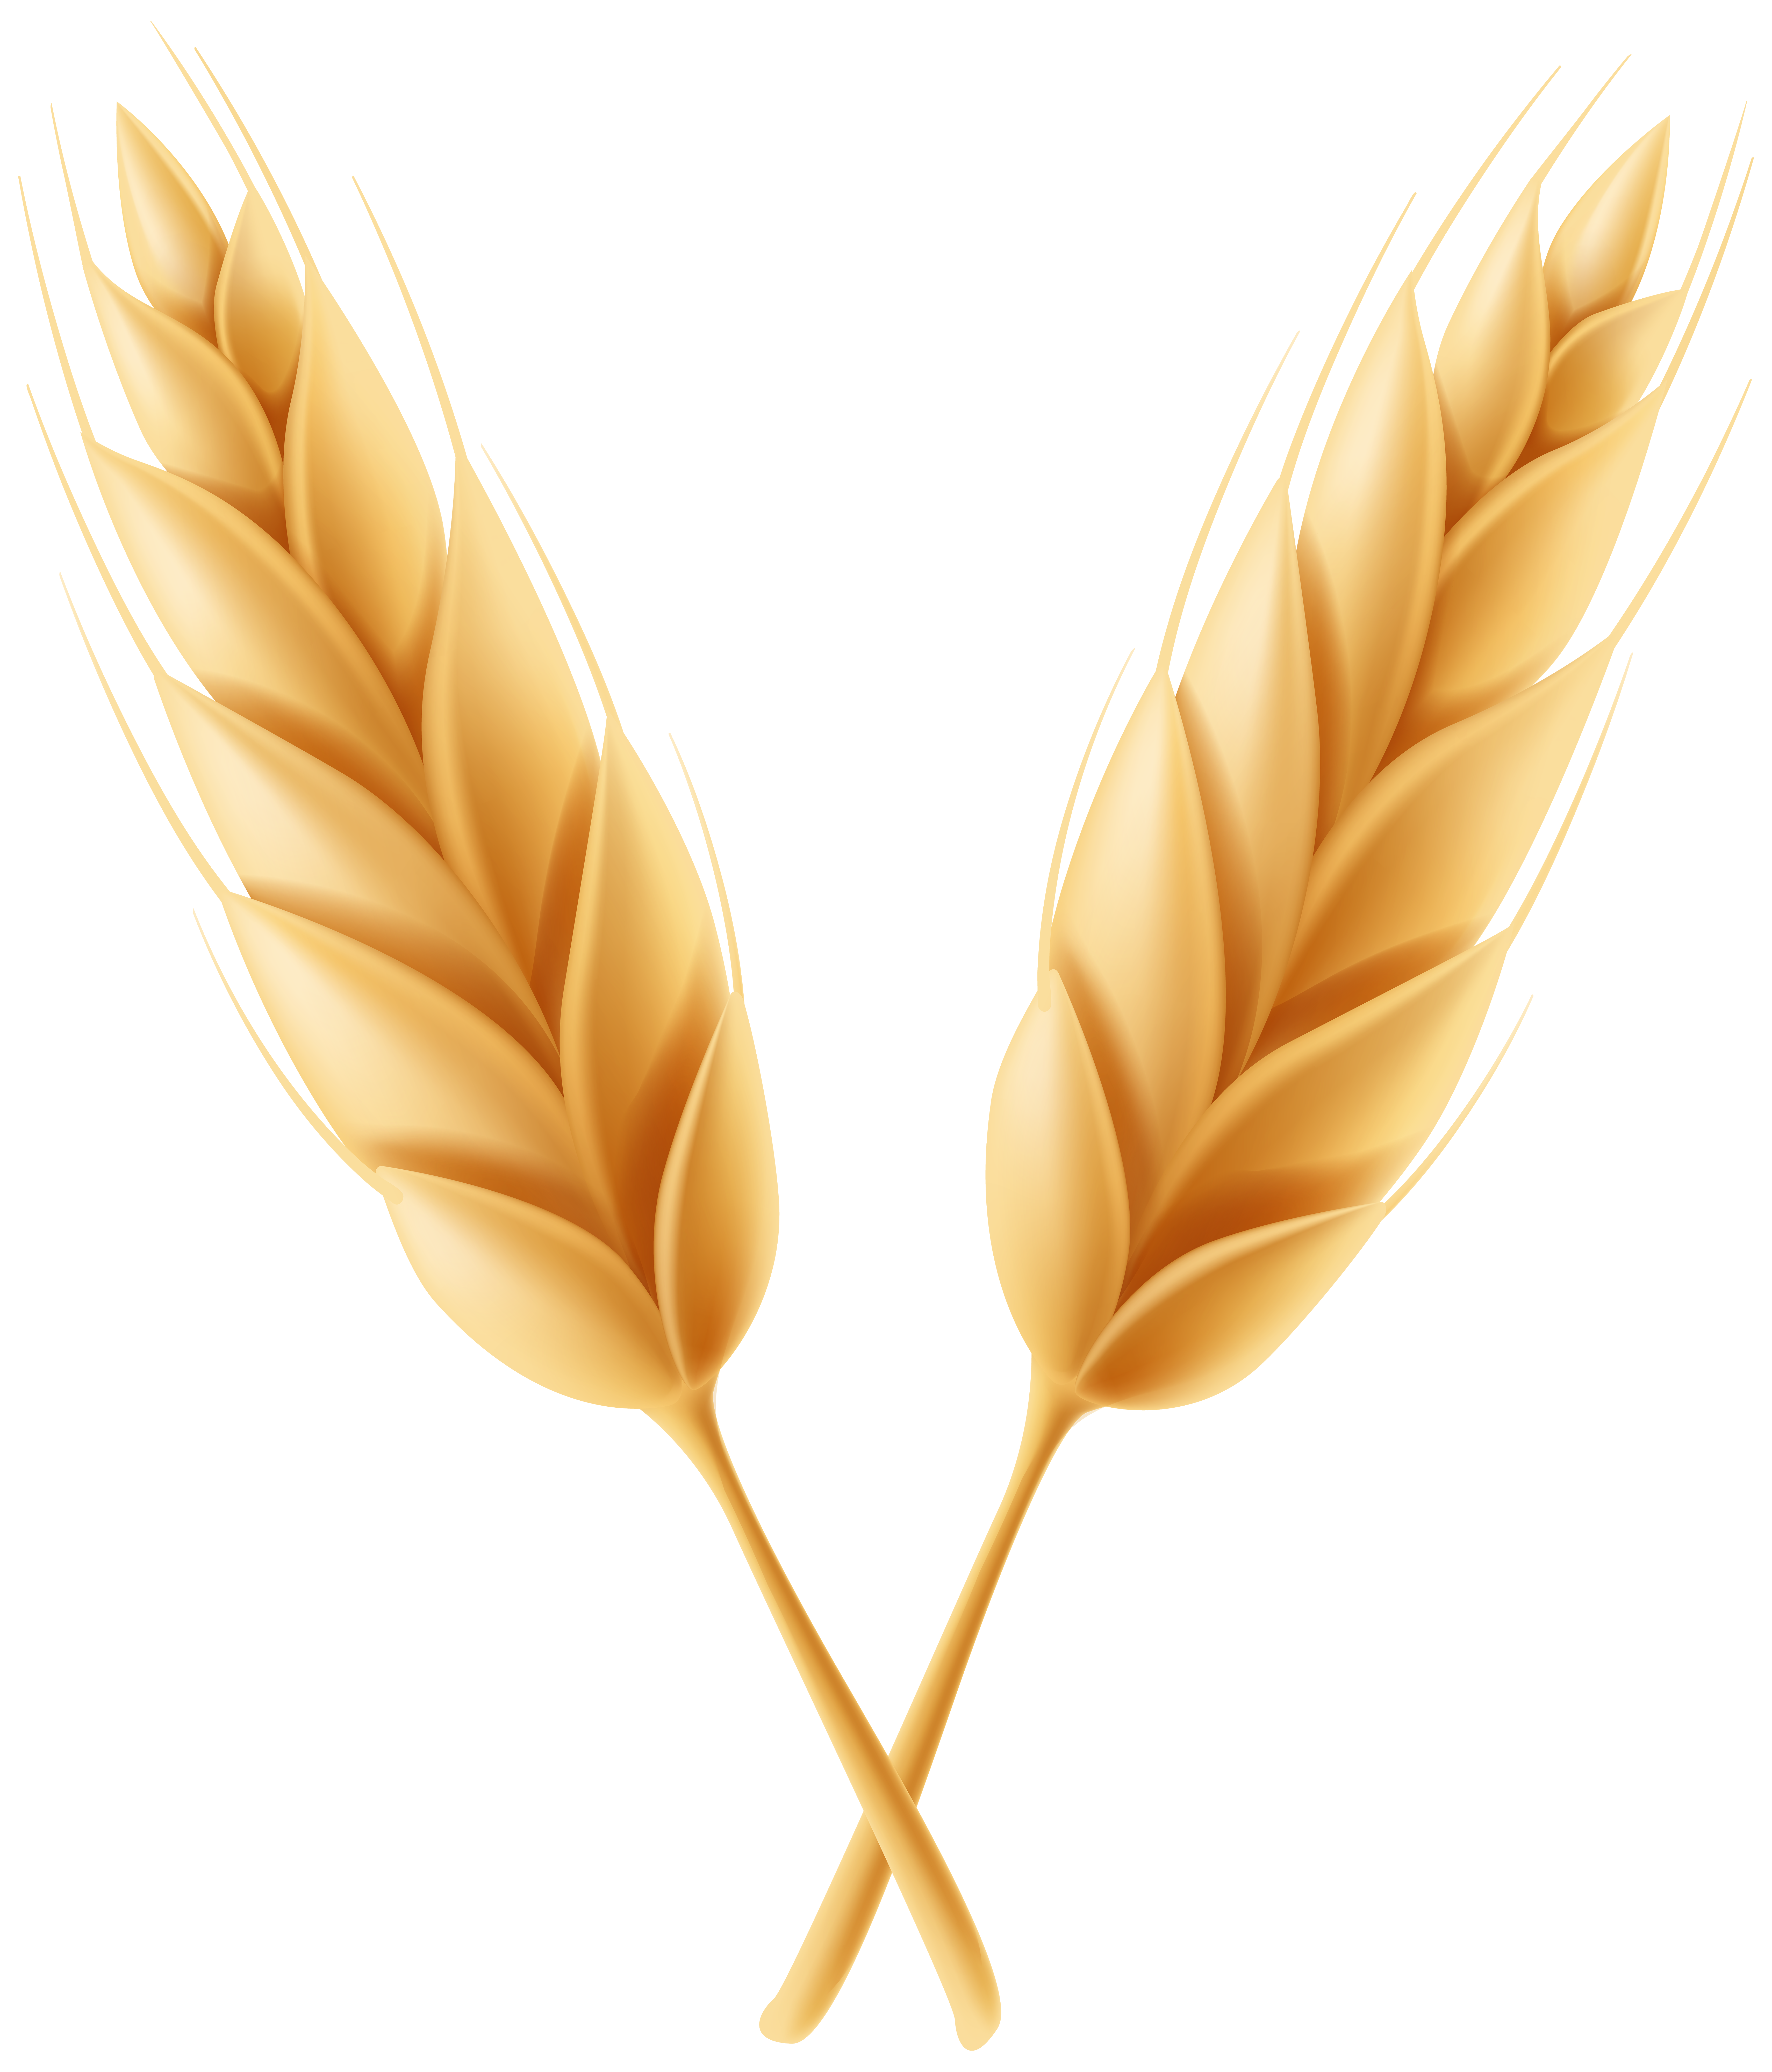 High resolution frames illustrations. Wheat clipart feather